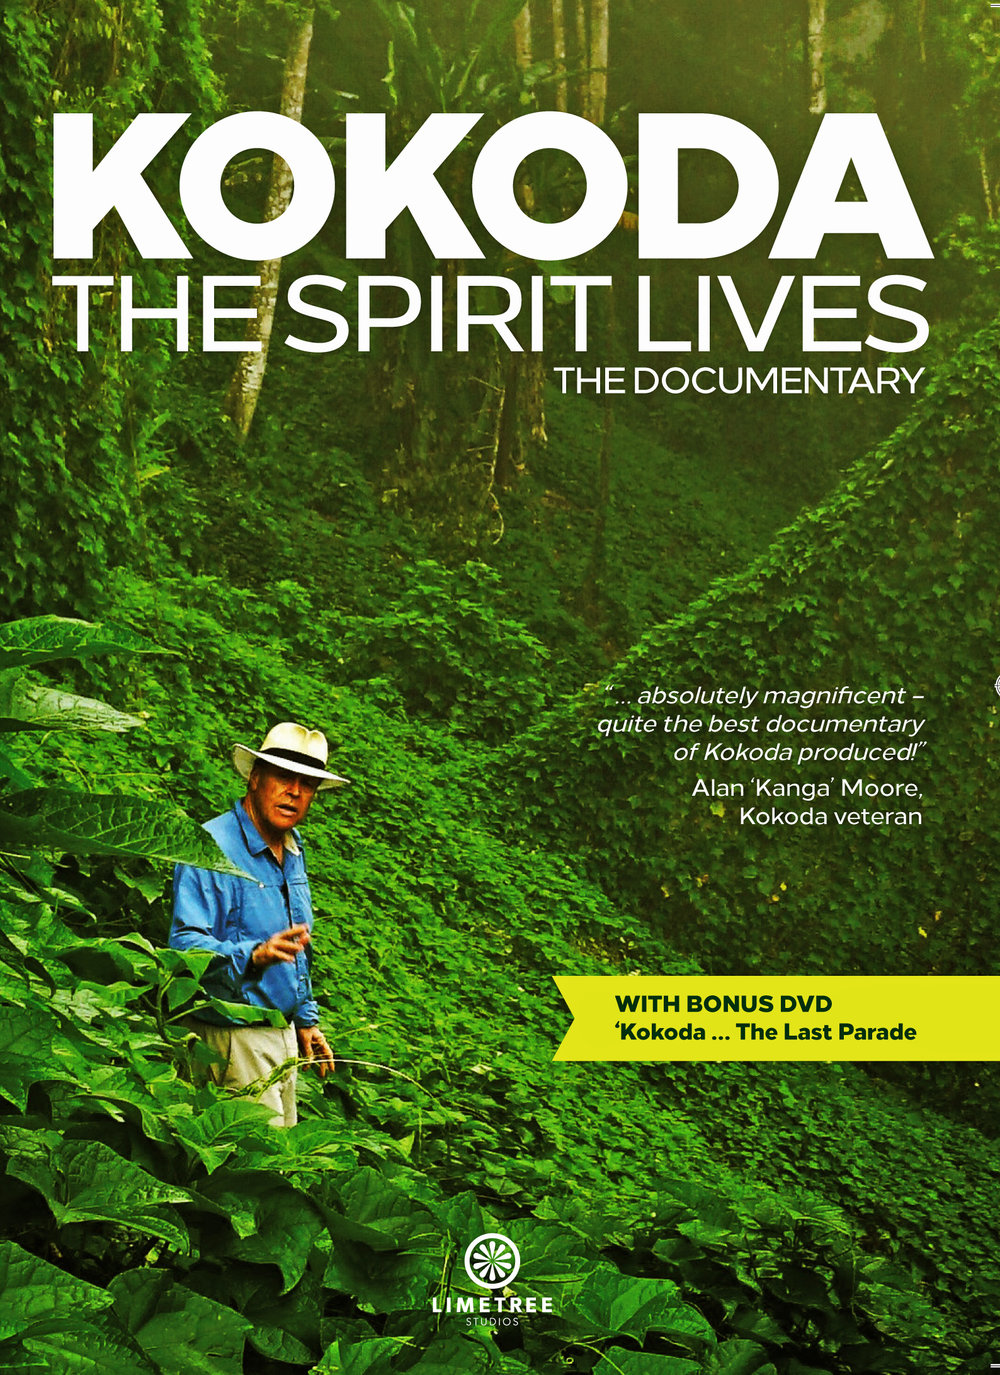 Limetree Studios produced the acclaimed feature-length documentary, 'Kokoda ... the Spirit Lives',  commemorating the 75th anniversary of the WWII Kokoda campaign, the battles that saved Australia.  Check out the trailer here  - The DVD of KOKODA, THE SPIRIT LIVES is available via the Australian War Memorial start and website. Order here